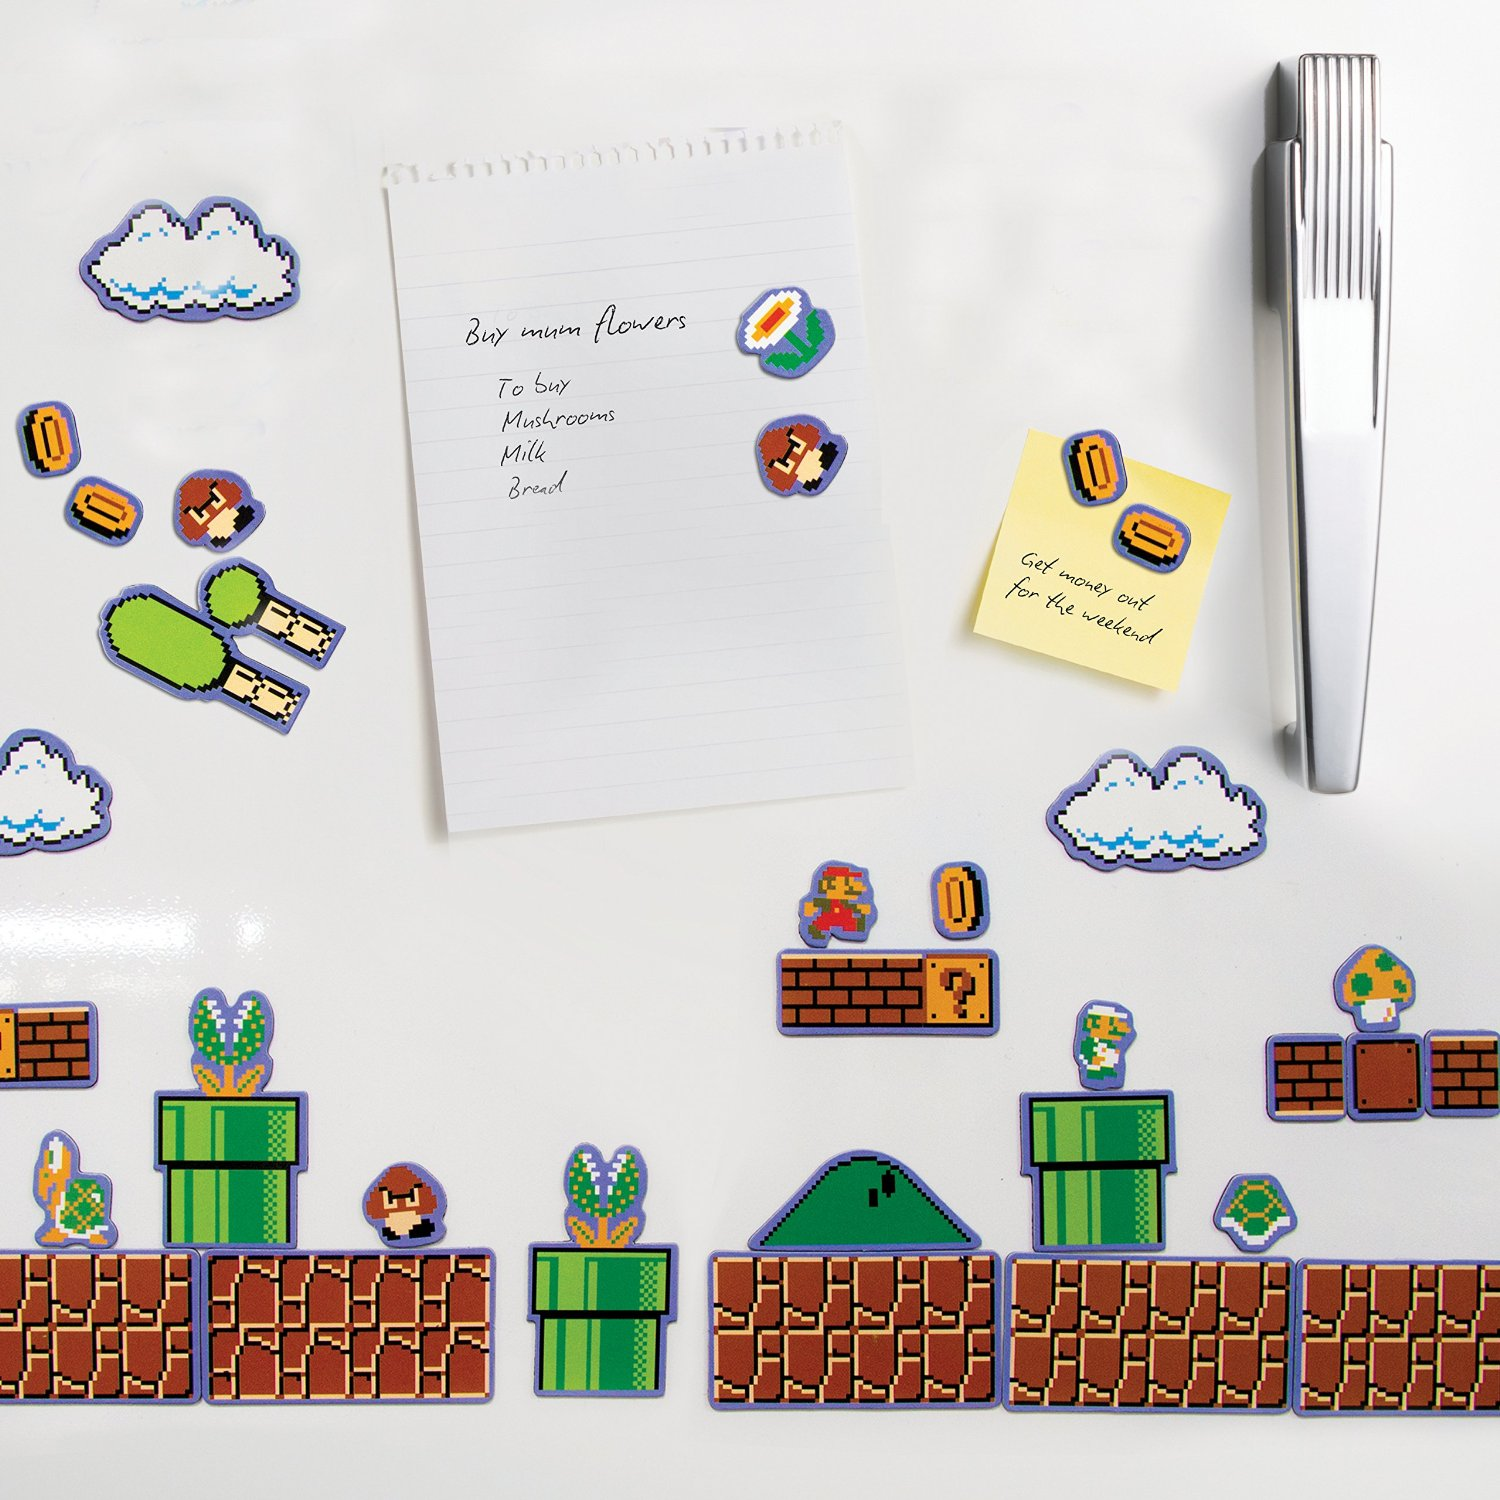 Super Mario Bros. Magnet Set £4.99